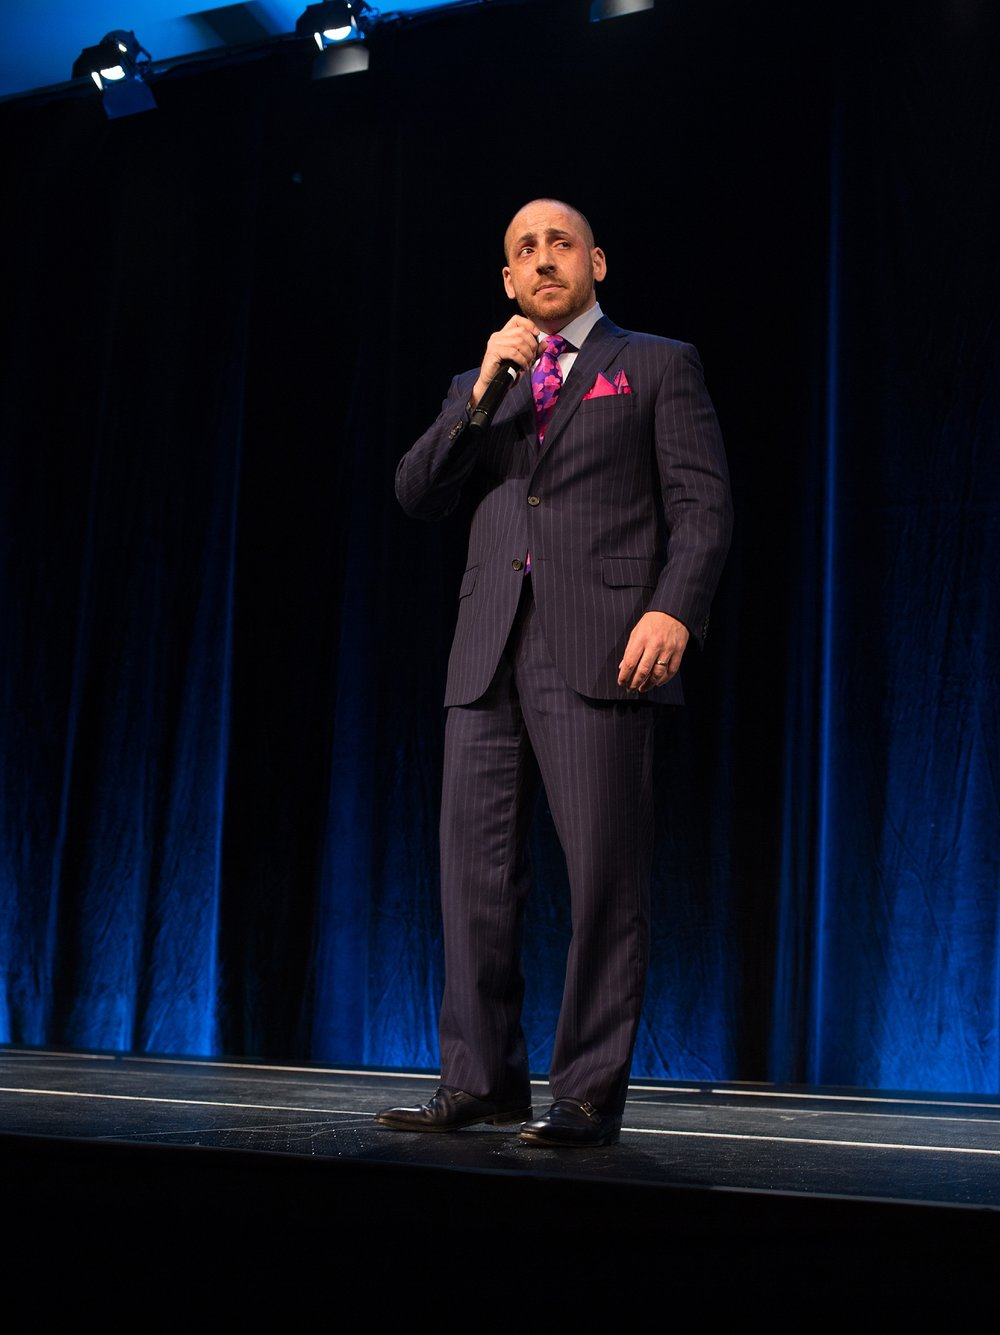 Jordan's Journey 2017 - Kate Lauren Studios  Keynote speaker Kevin Hines